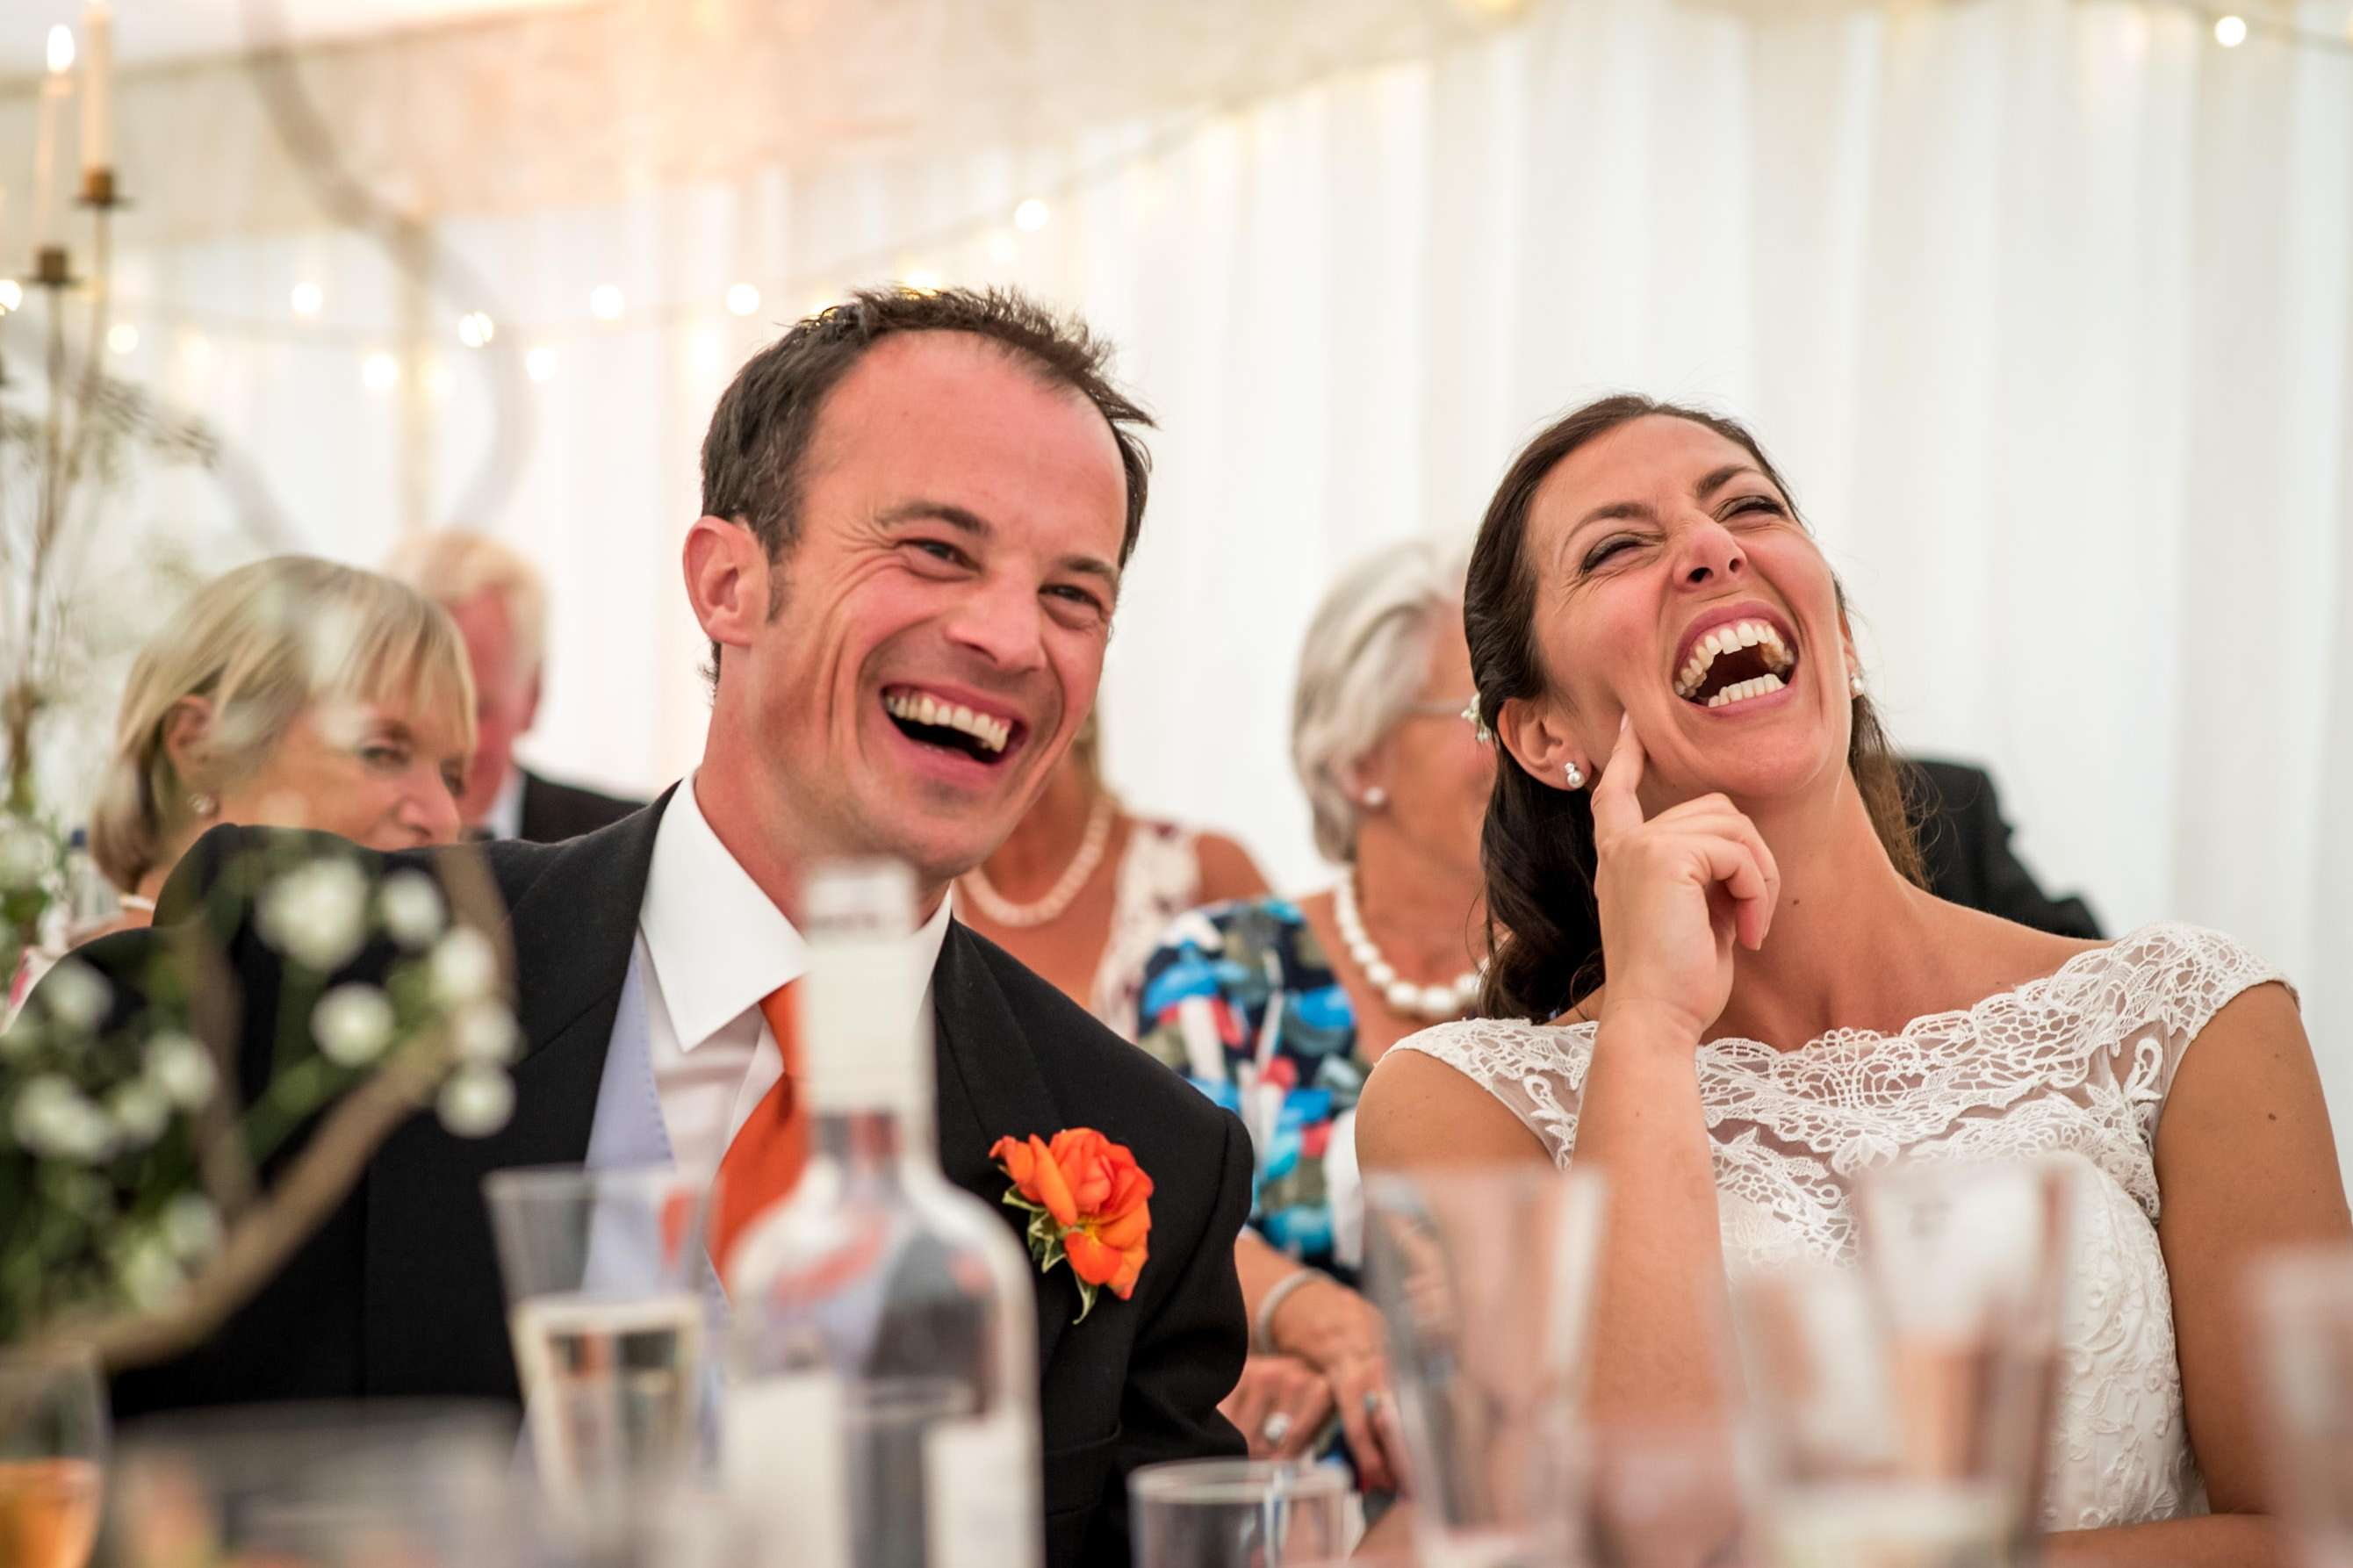 A bride and groom's favourite wedding photo showing them laughing during the speeches